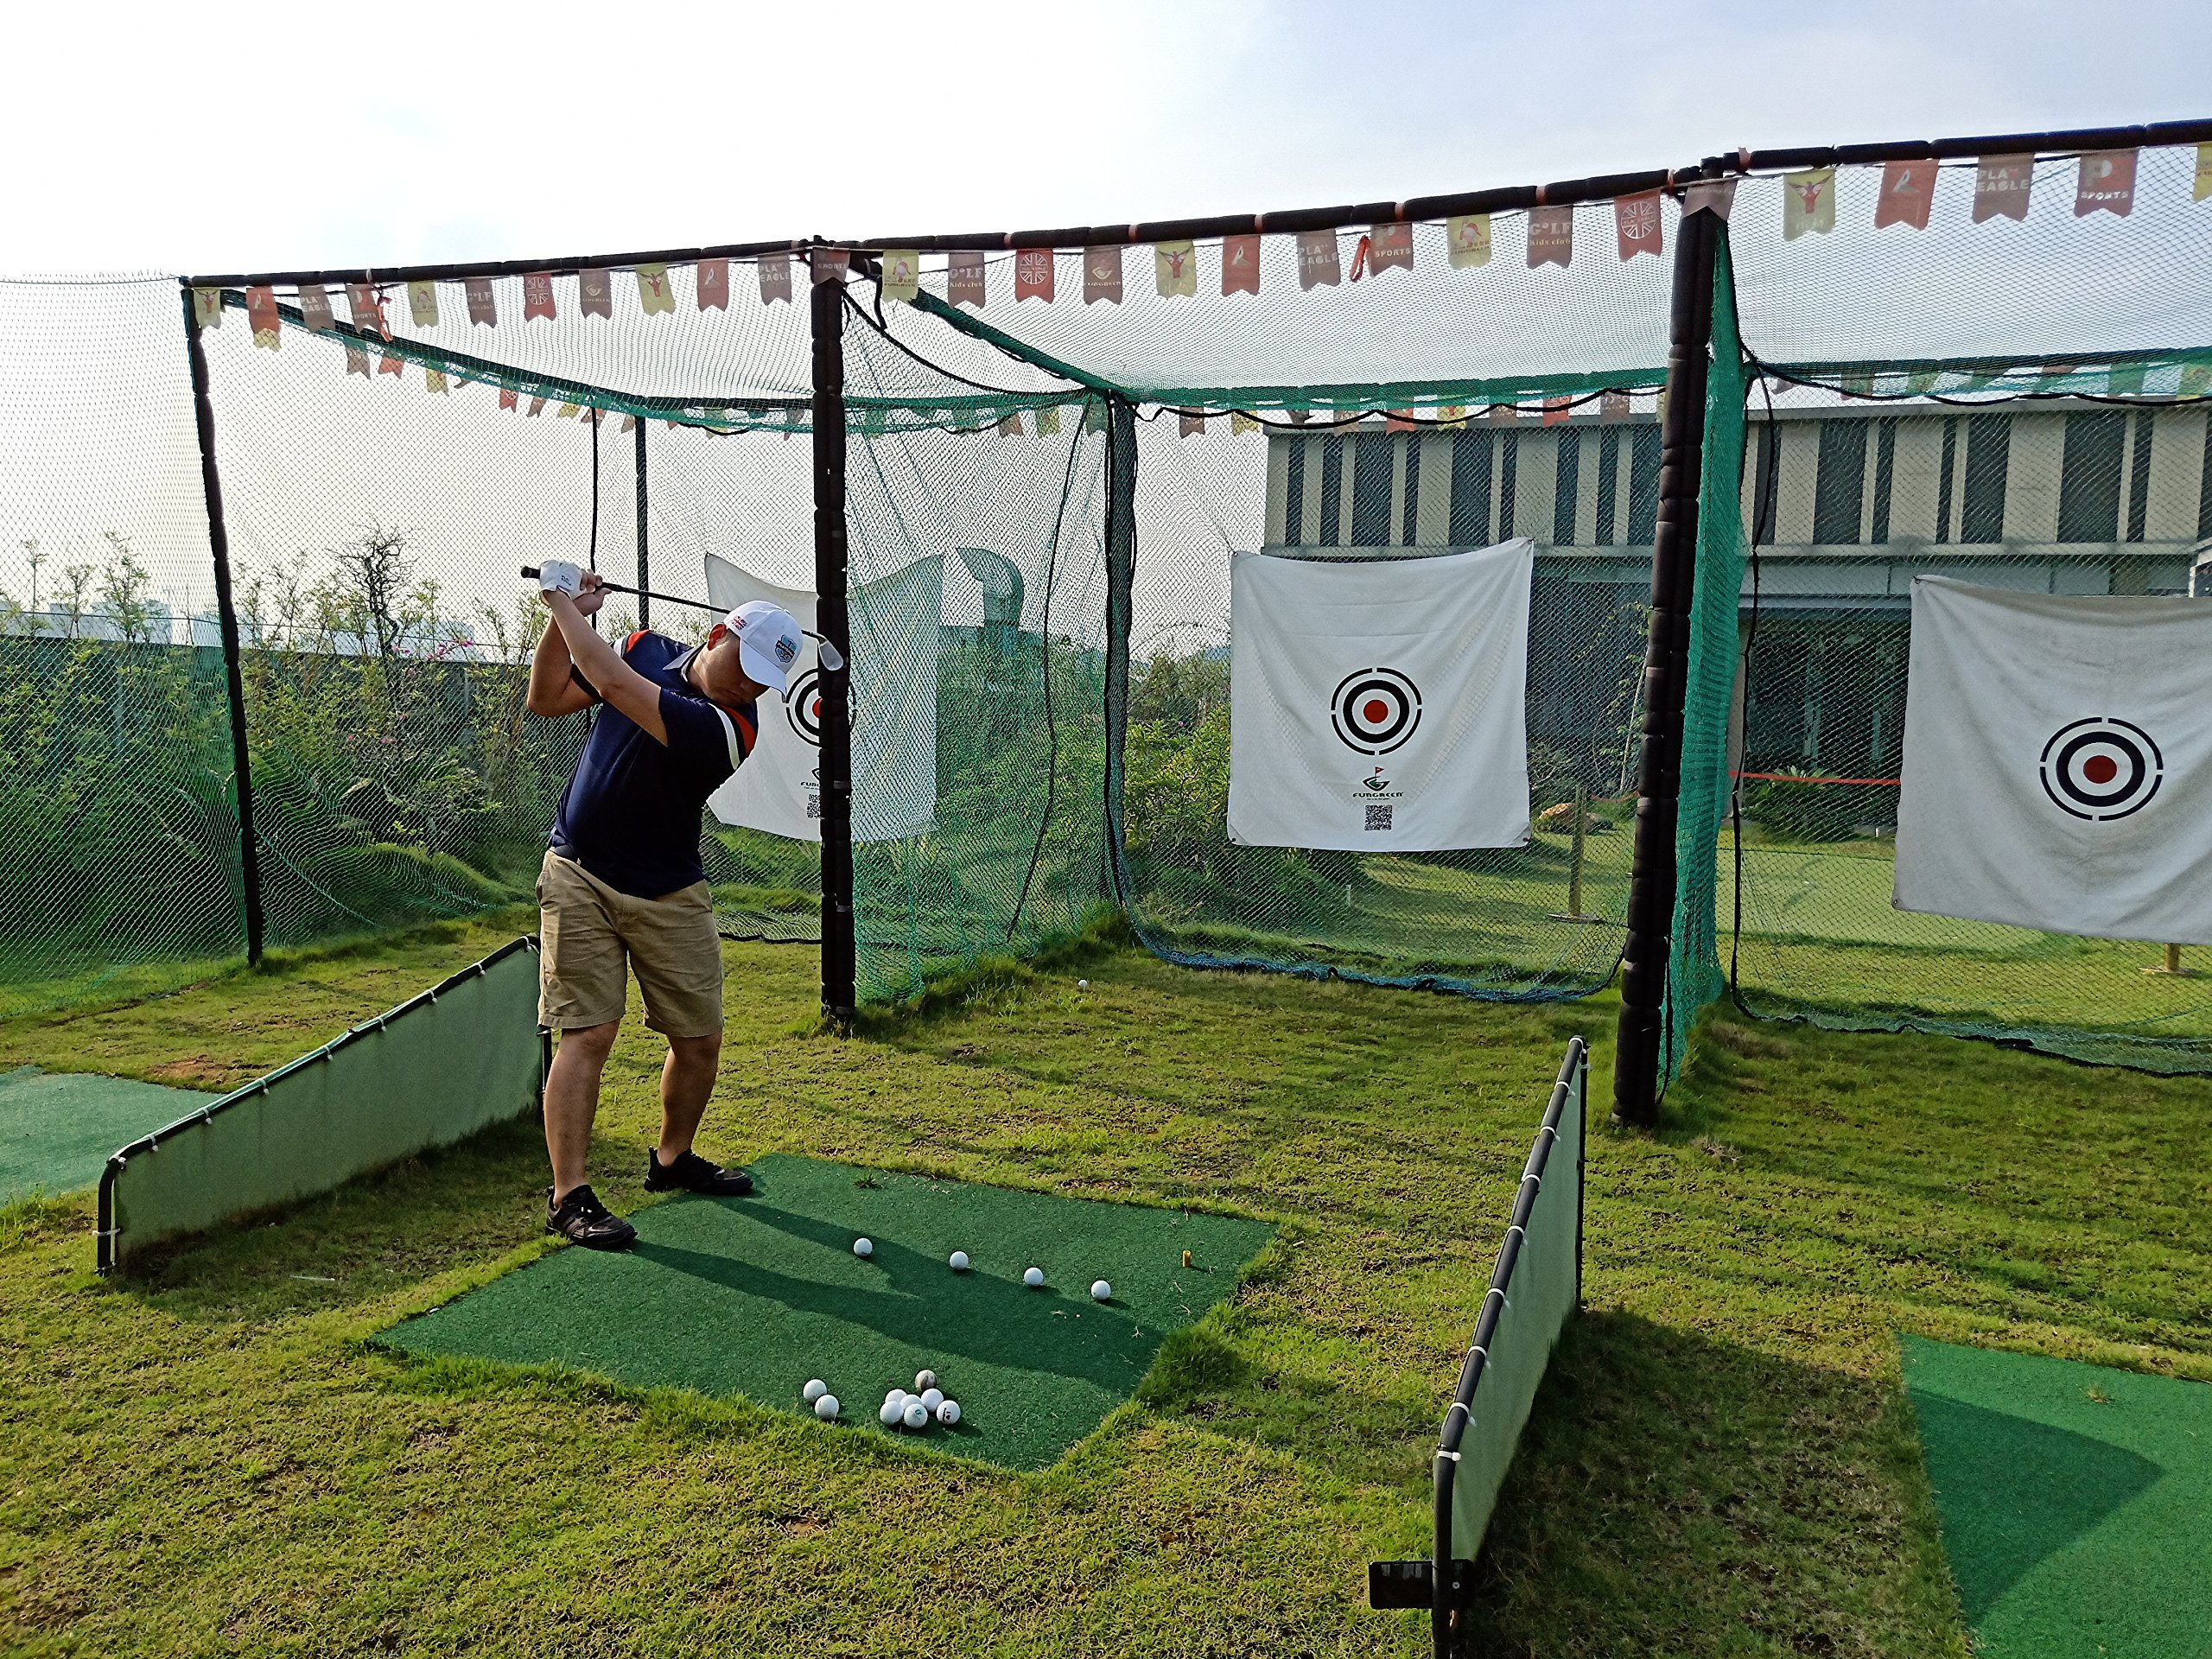 FUNGREEN 1.5Mx1.5M Golf Hitting Target Cloth for Golf Practice Indoor Training Outdoor Court Hitting Cloth Golf Accessories by FUNGREEN (Image #5)